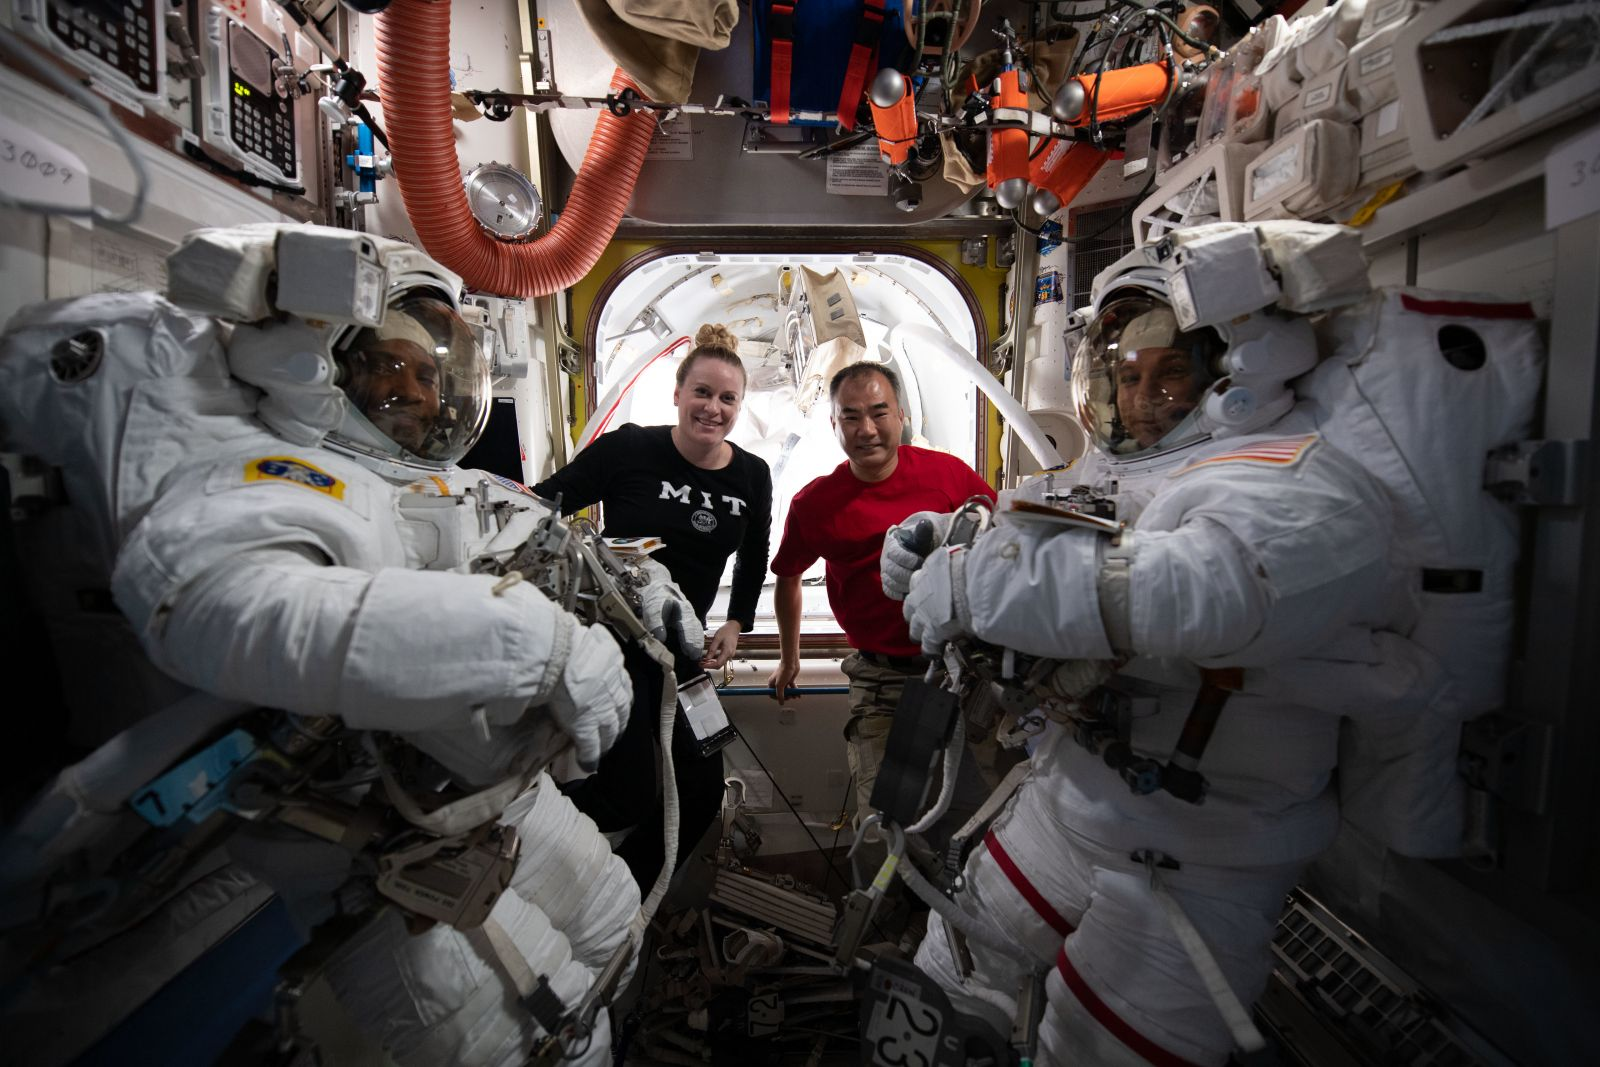 NASA astronaut Mike Hopkins right and Victor Glover right seen in their spacesuits before the first spacewalk of 2021. NASA astronaut Kate Rubins in the black shirt worked with Japanese astronaut Soichi Noguchi in the red shirt assisted the spacew